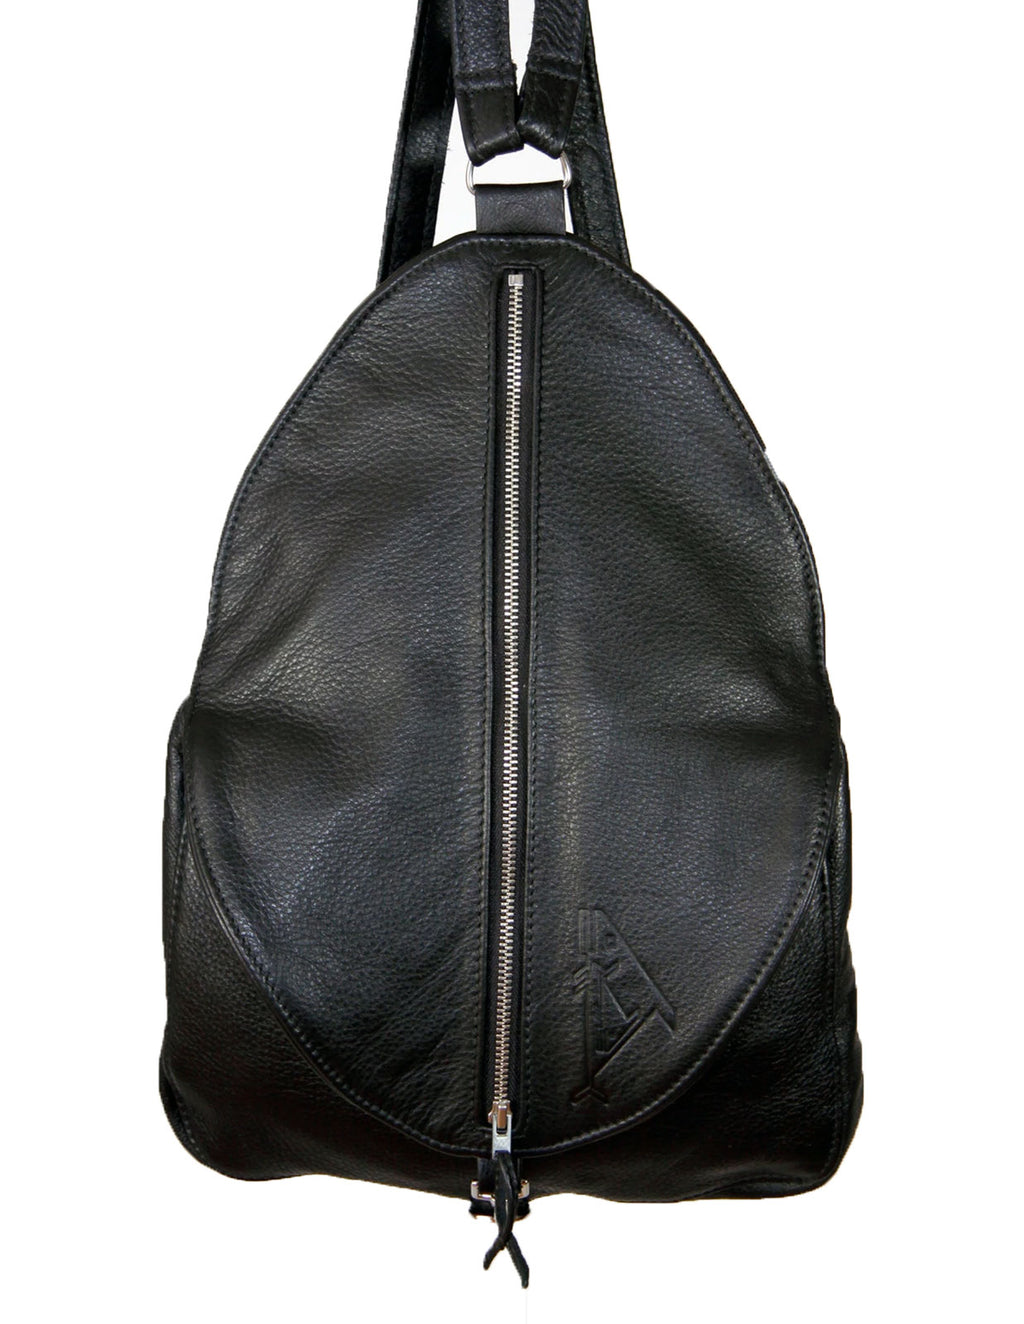 Egg Bag Backpack - Indian Summer's designer leather purses